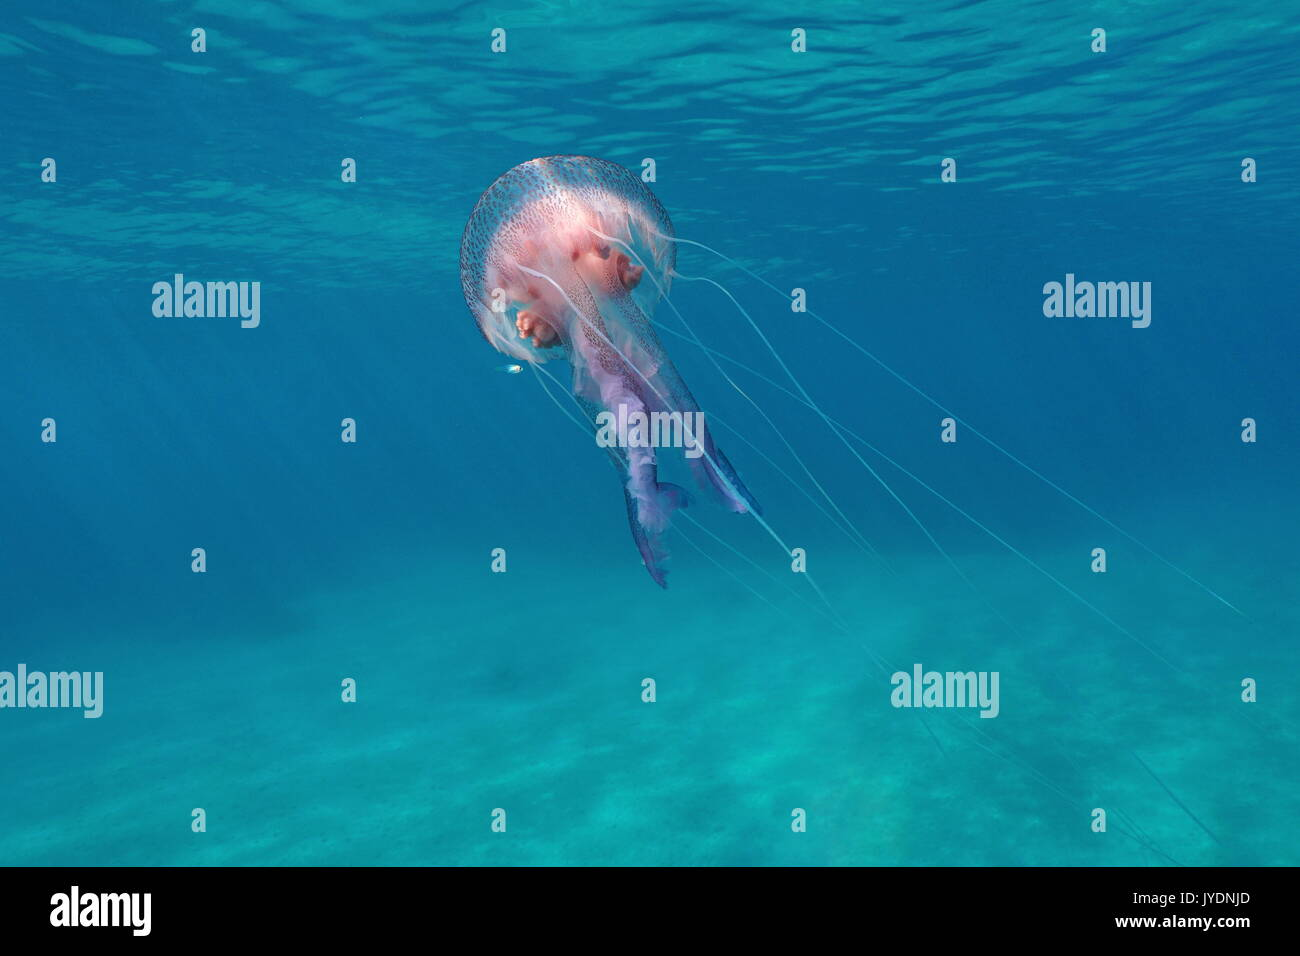 A mauve stinger jellyfish Pelagia noctiluca underwater close to water surface in the Mediterranean sea, Calabira,Tropea, Italy - Stock Image